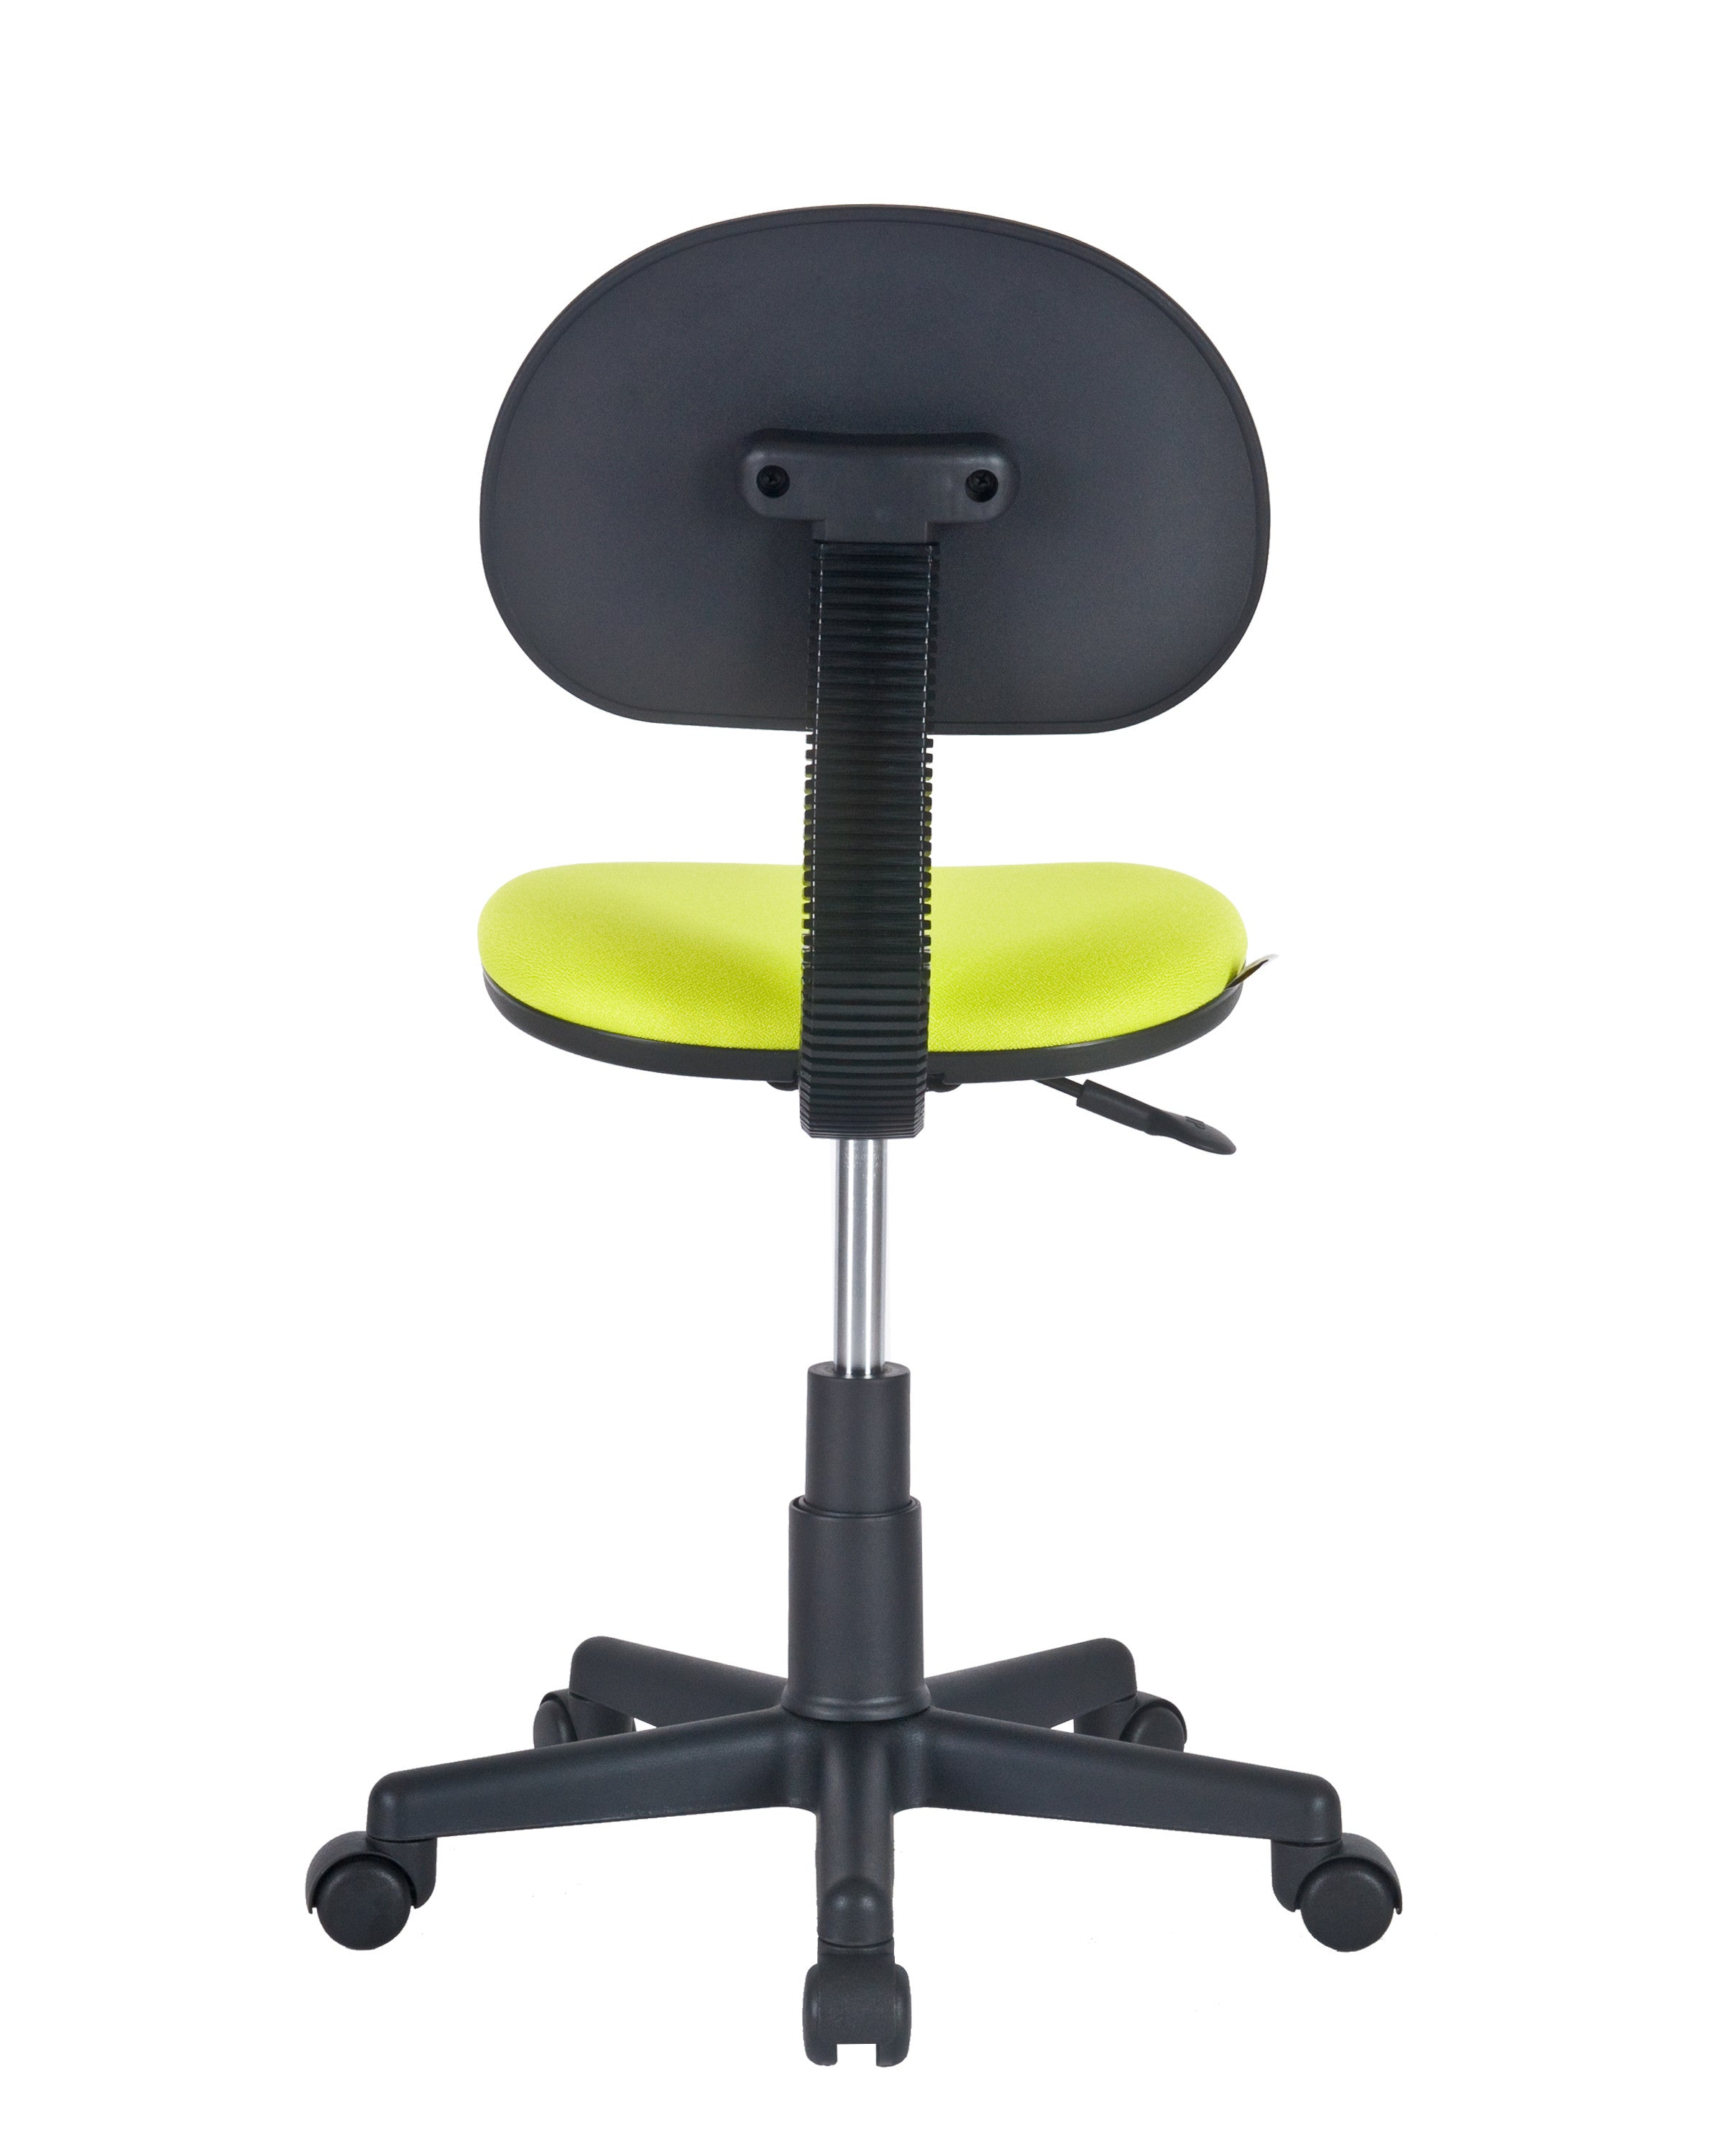 Armless Task Chair by Charm Furniture (Green)